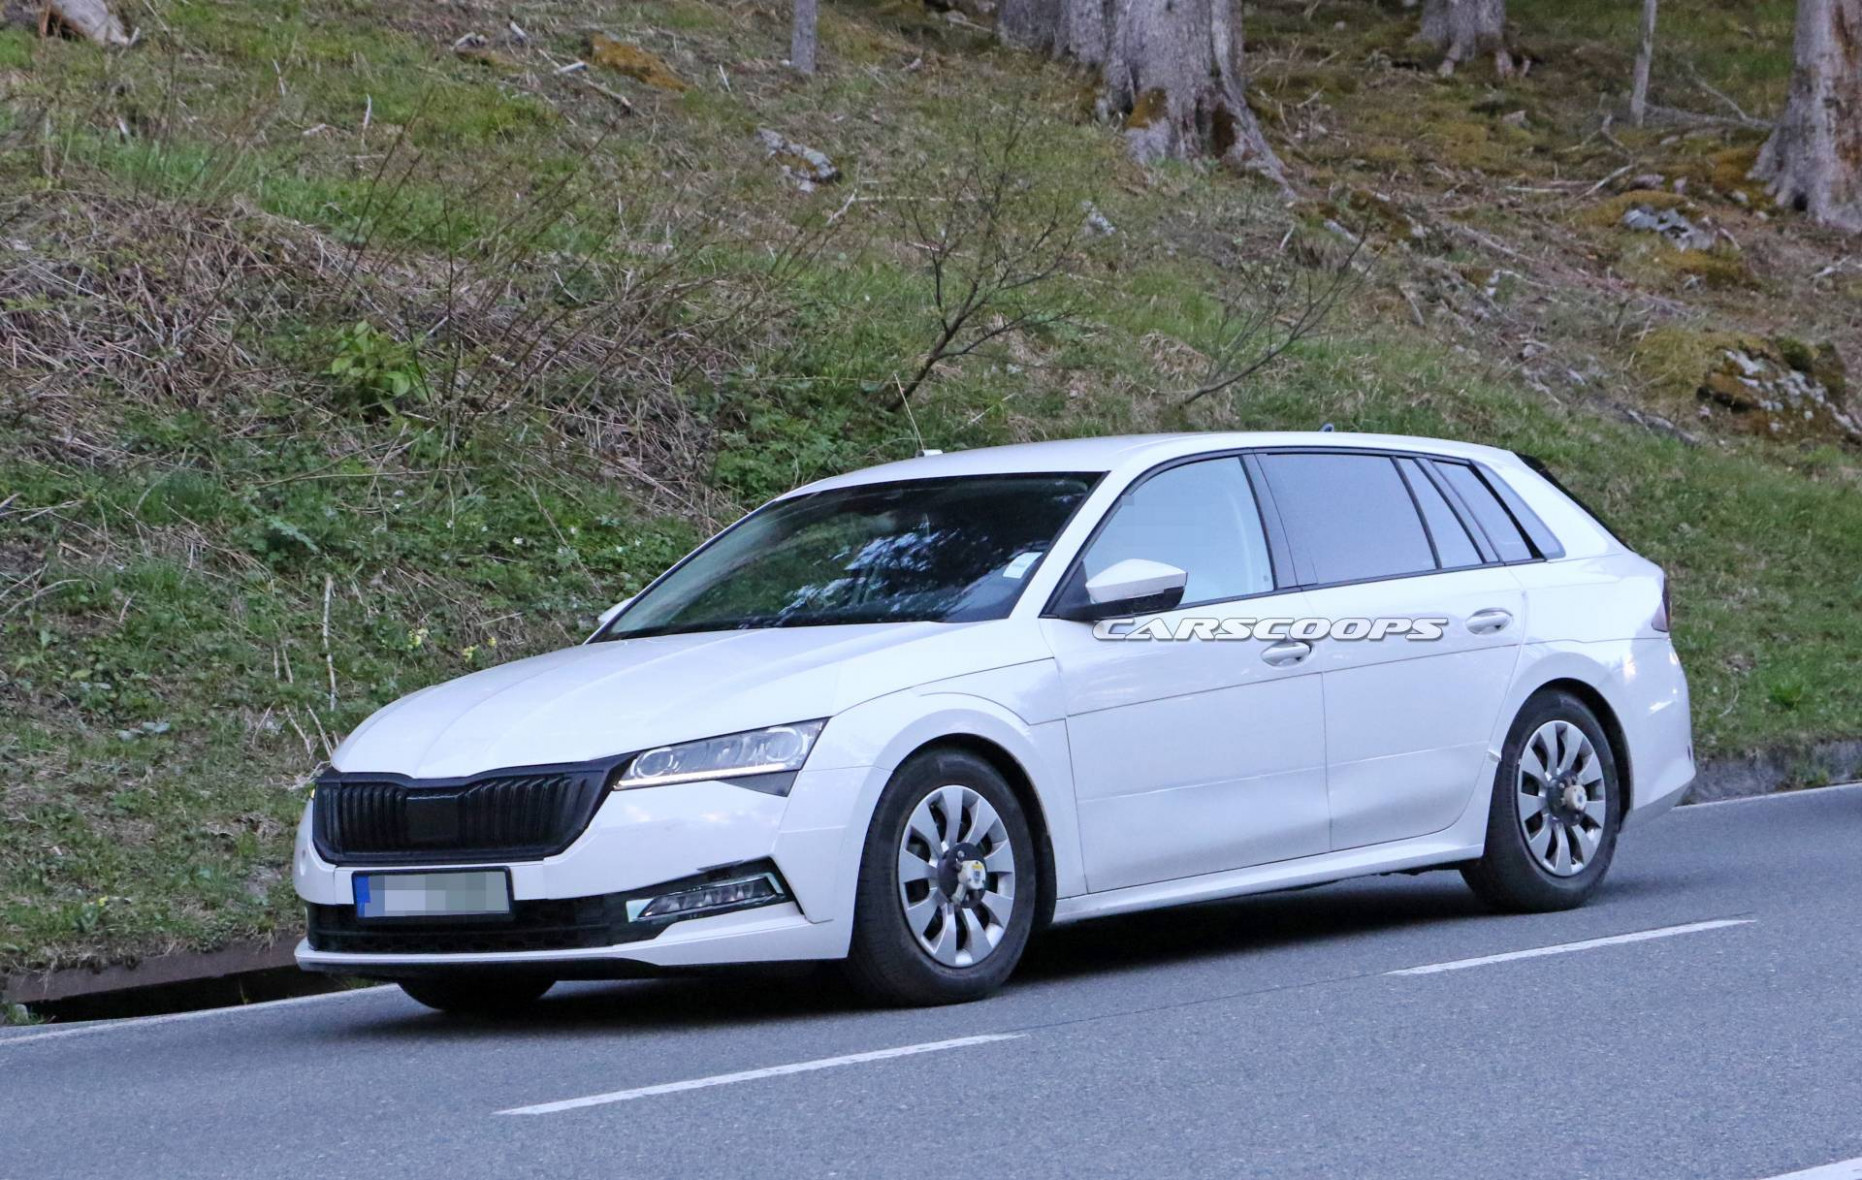 New Model and Performance 2022 The Spy Shots Skoda Superb